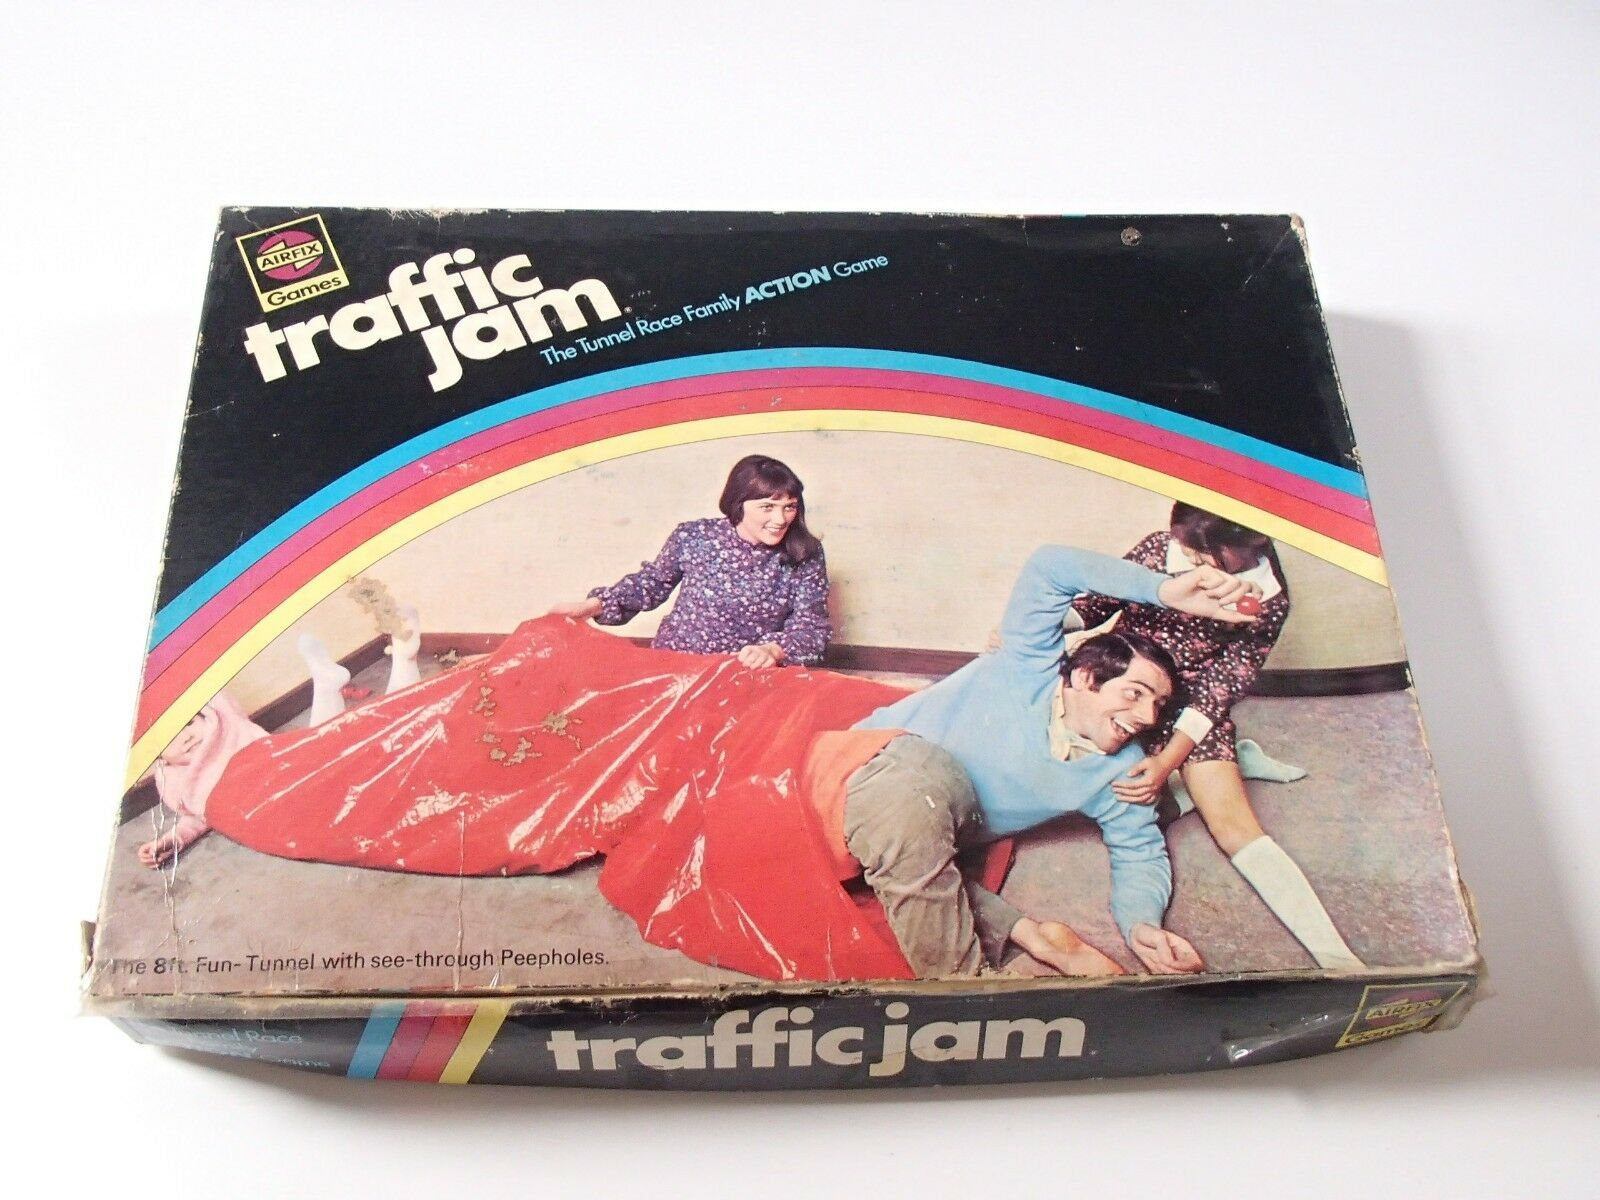 Rare Vintage 1970 Airfix Games Traffic Jam 8ft Tunnel Race Family Action Game